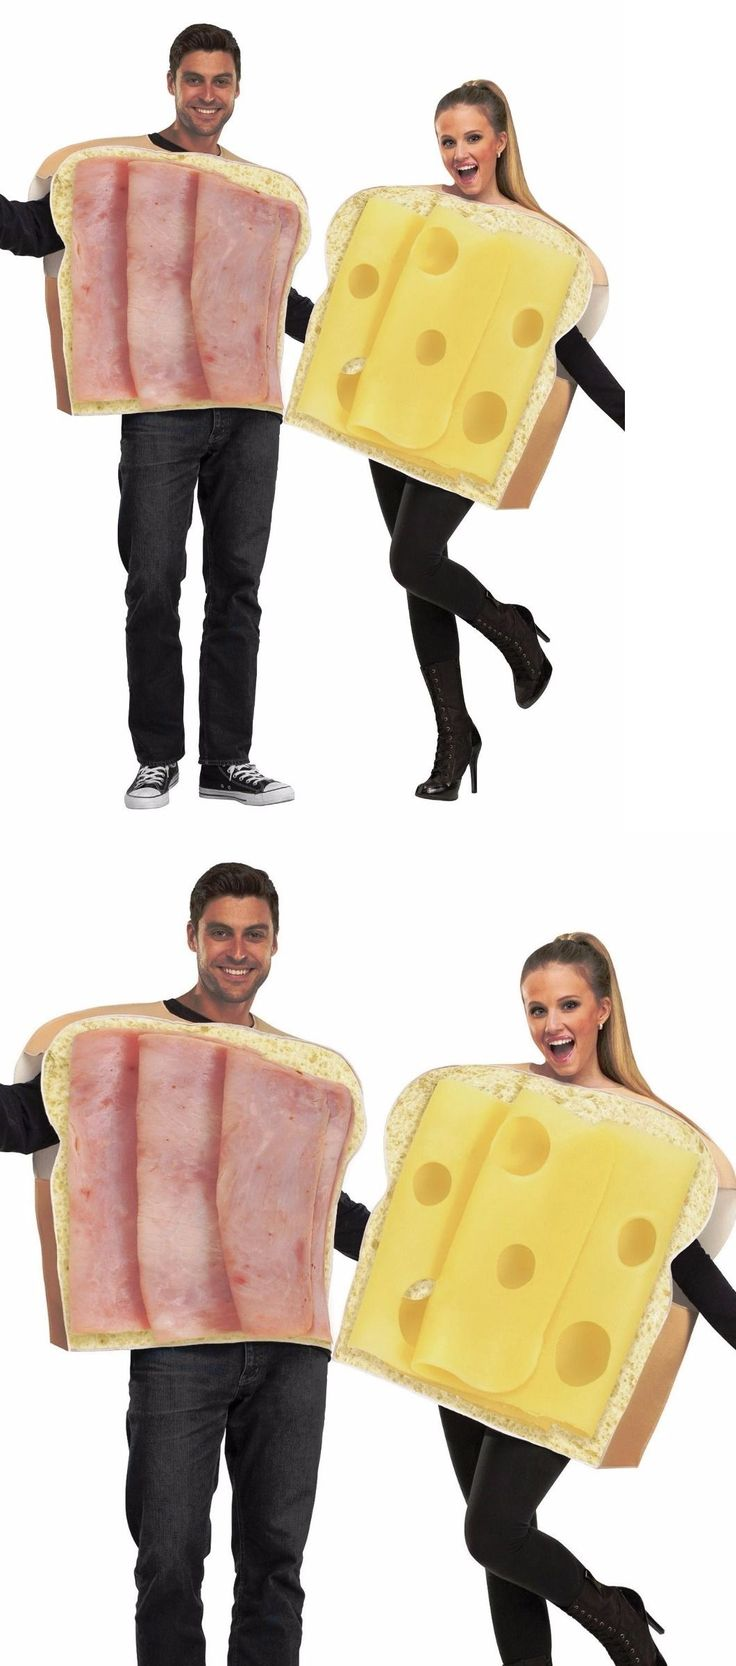 Halloween Costumes Couples: Adult Couples Ham And Swiss Cheese Costumes Funny Humorous Sandwich Food Costume BUY IT NOW ONLY: $26.21